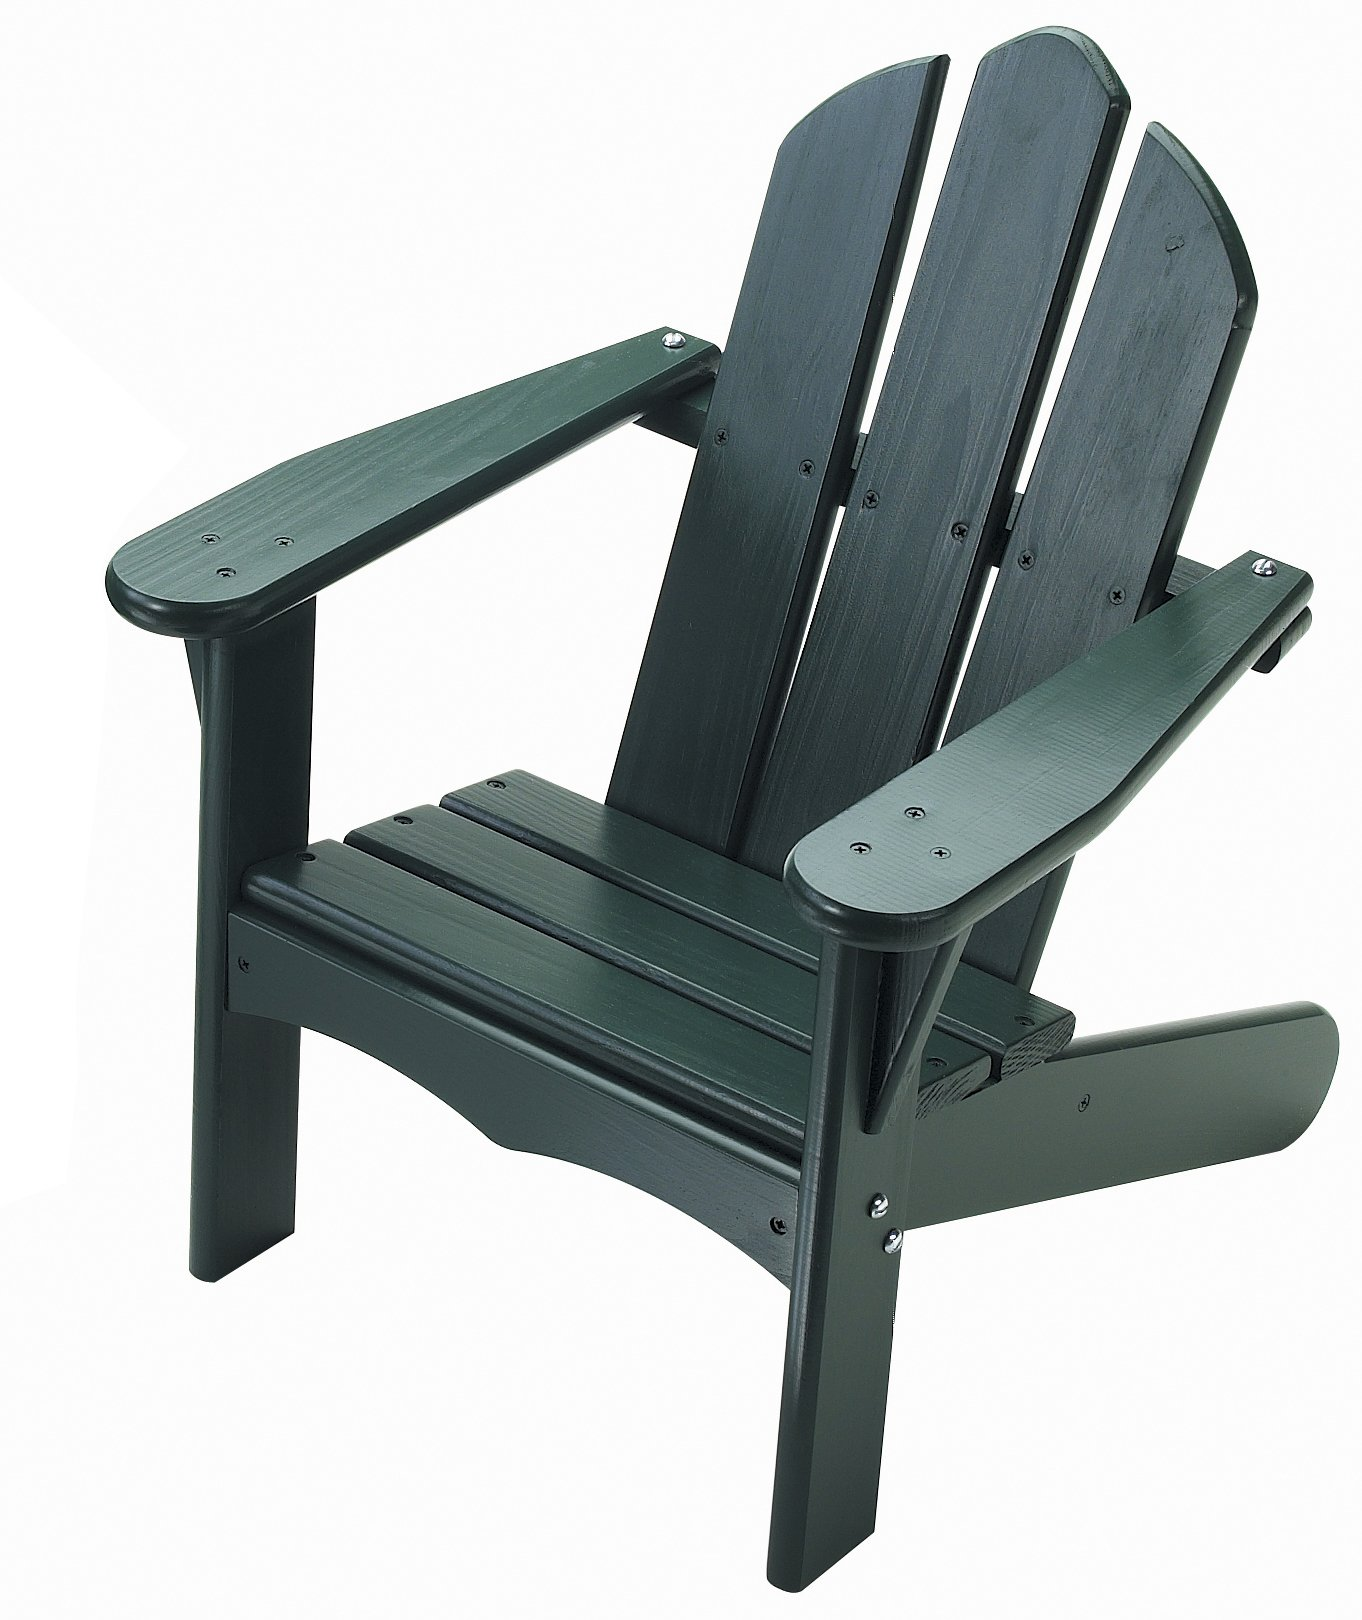 Little Colorado Personalized Child's Adirondack Chair- Green by Little Colorado